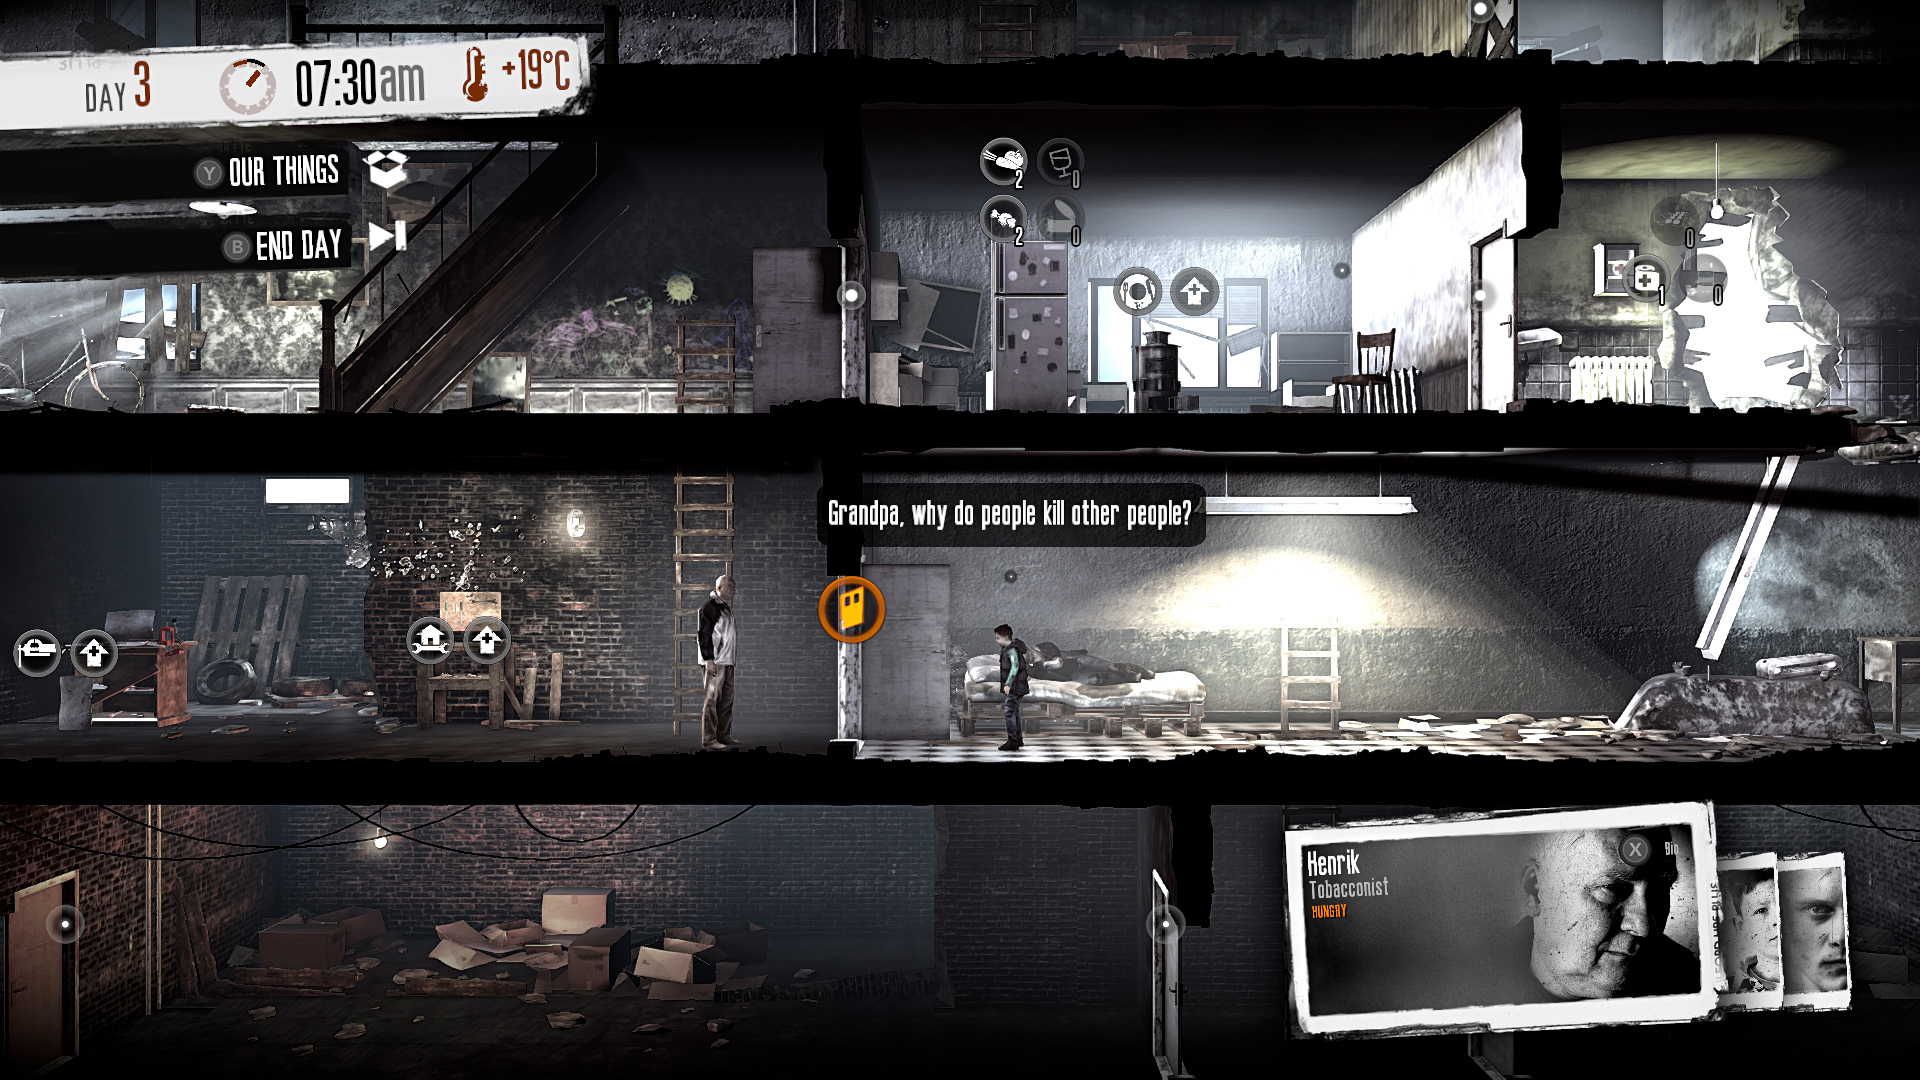 Can you survive in a besieged city? Find out in This War of Mine for iOS, now $3 (Reg. $15)